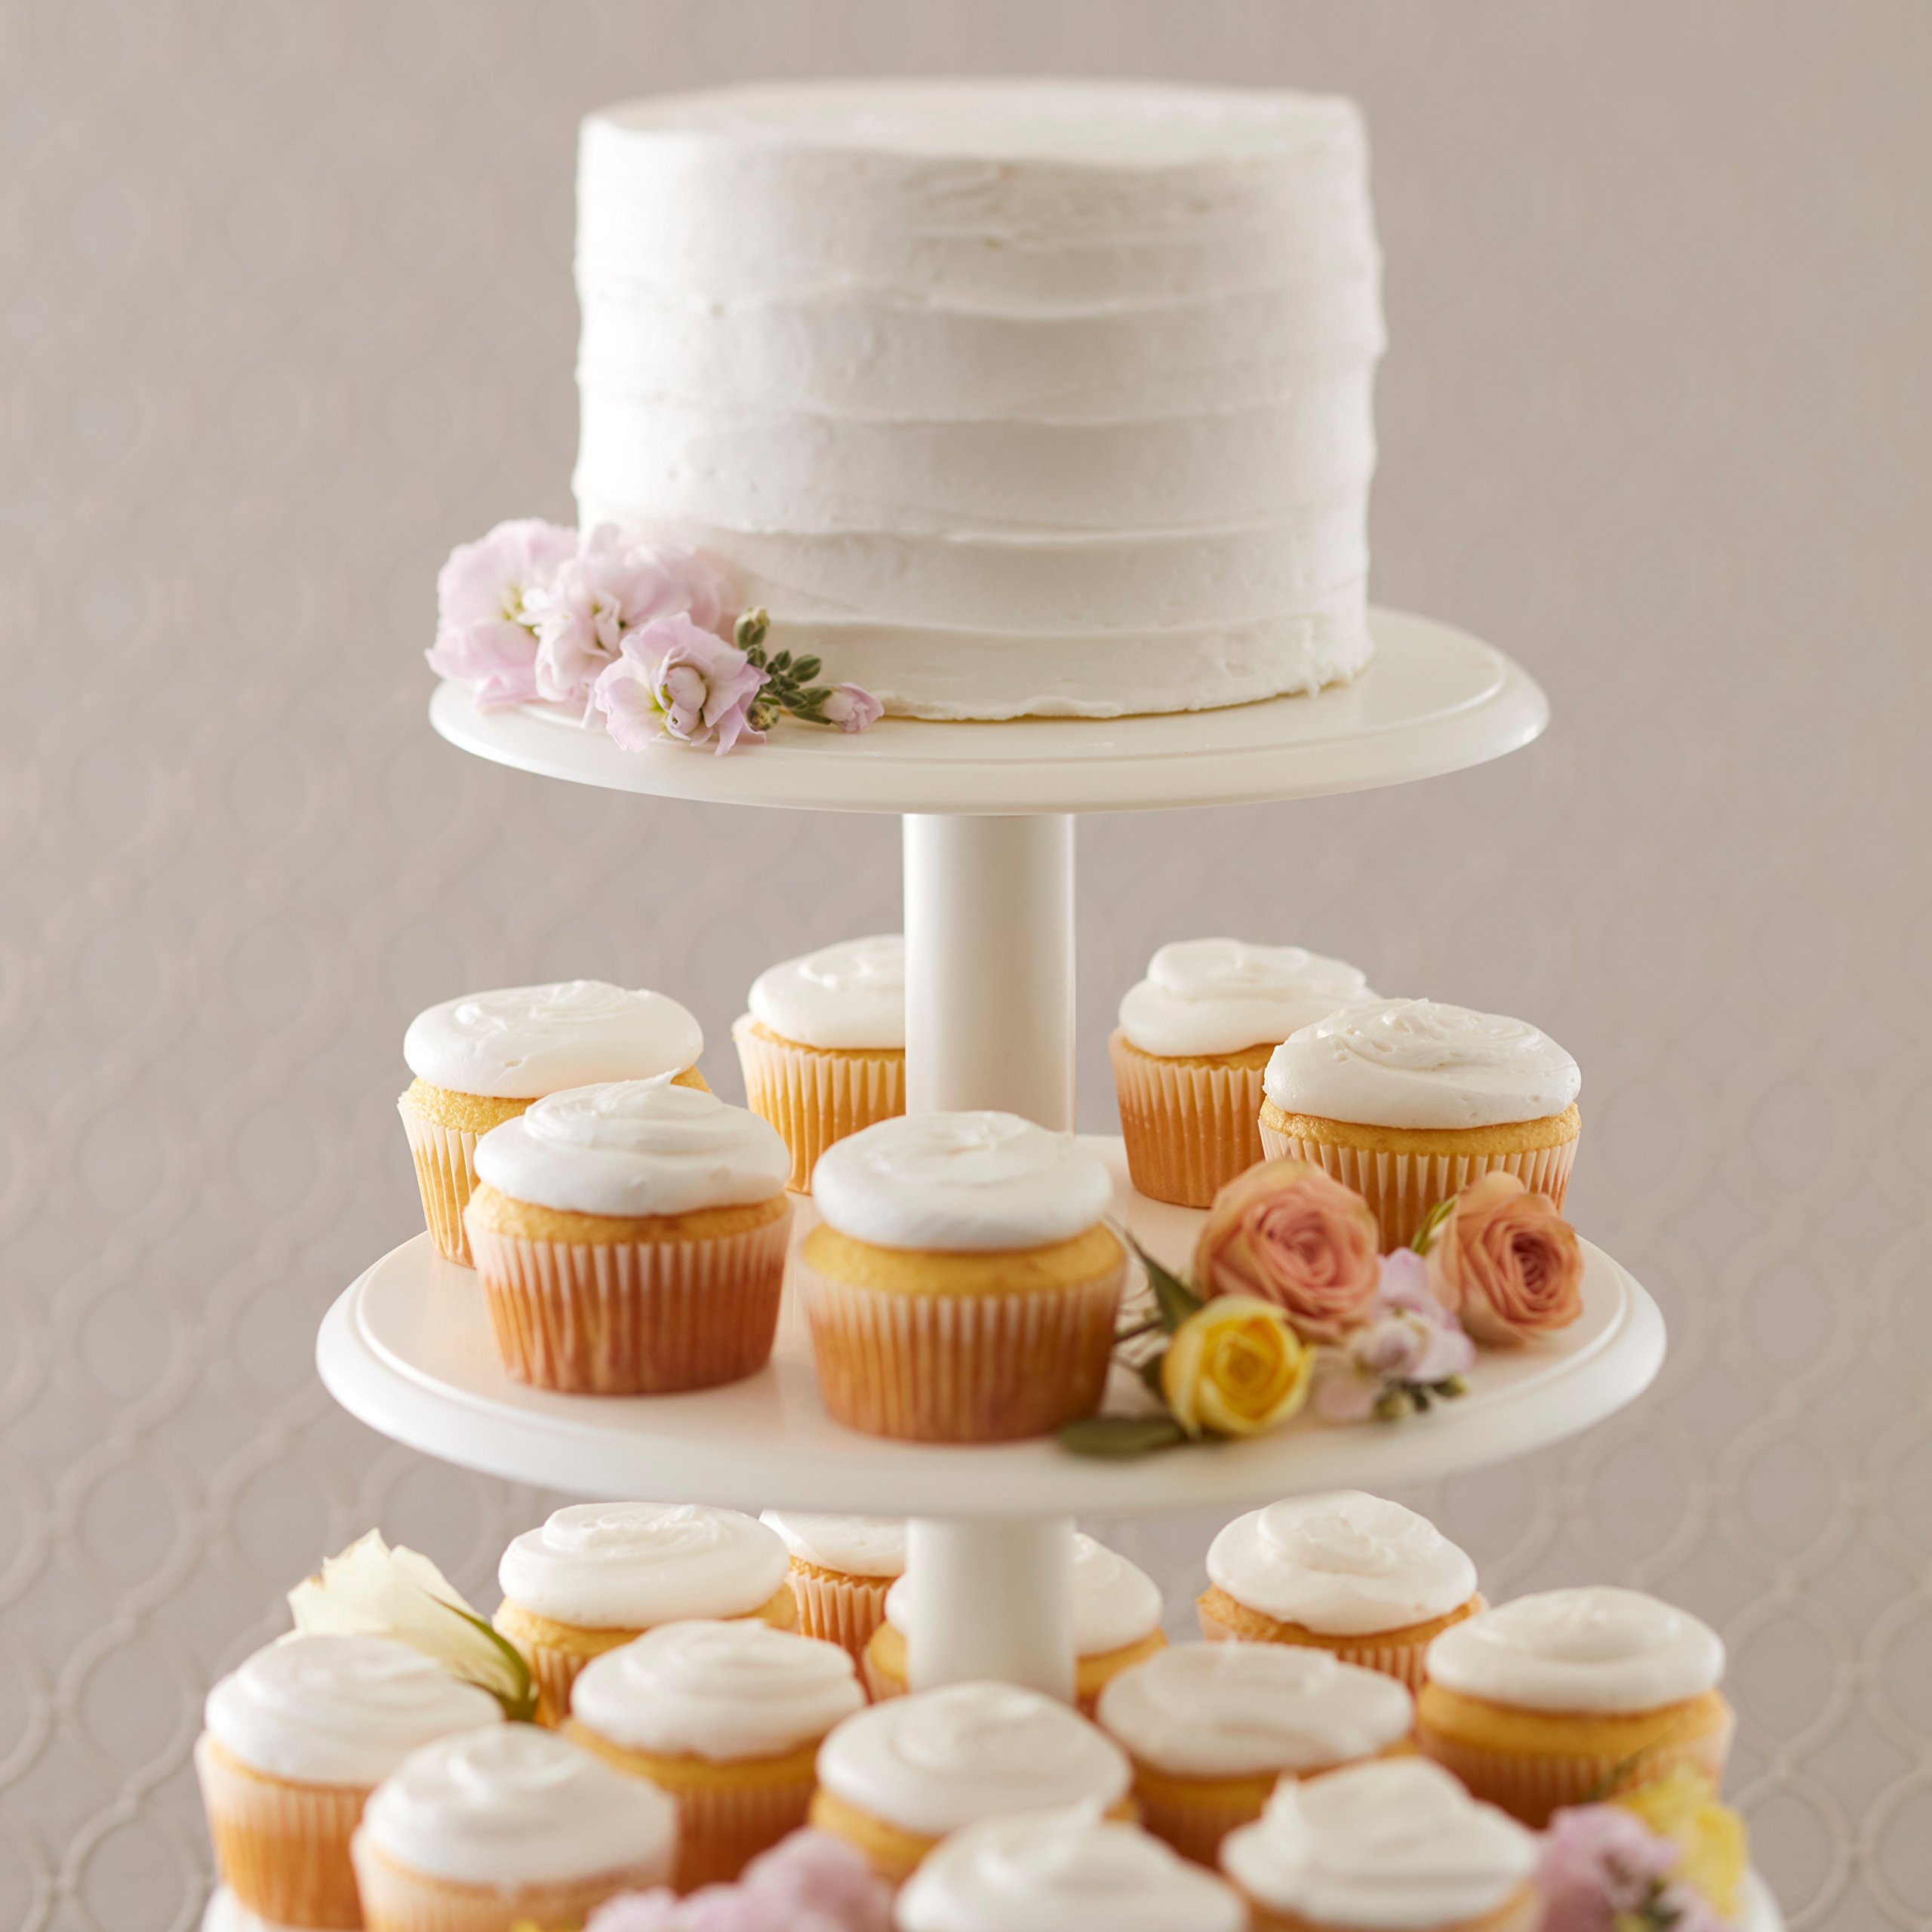 Wilton Towering Tiers Cupcake and Dessert Stand, Great for Displaying Cupcakes, Danishes and Your Favorite Hors d'Oeuvres, White, 3-foot, 28-Piece by Wilton (Image #5)